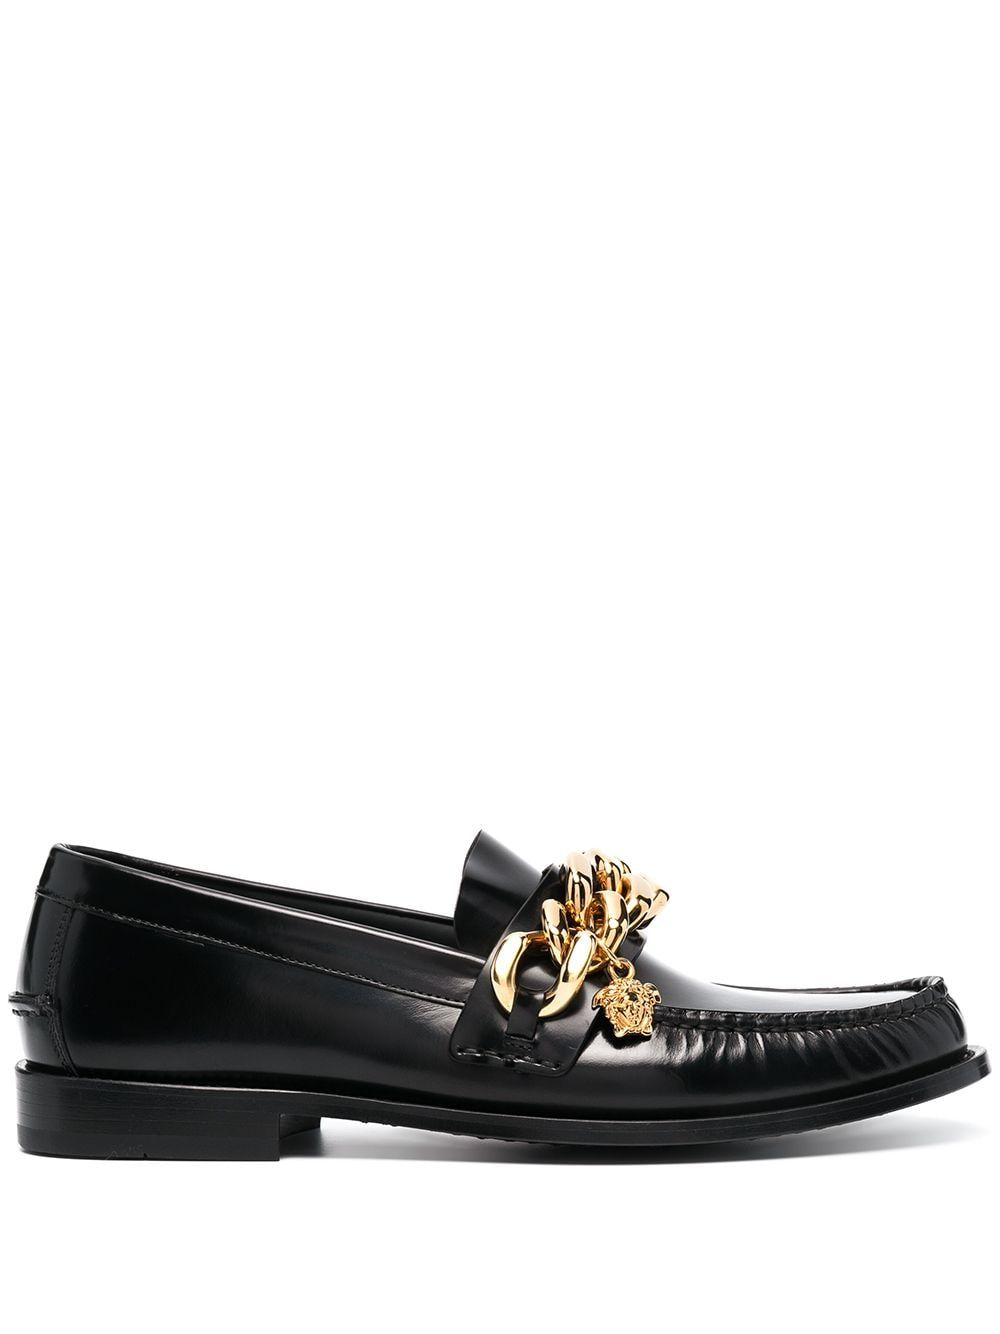 Versace VERSACE MEN'S BLACK LEATHER LOAFERS